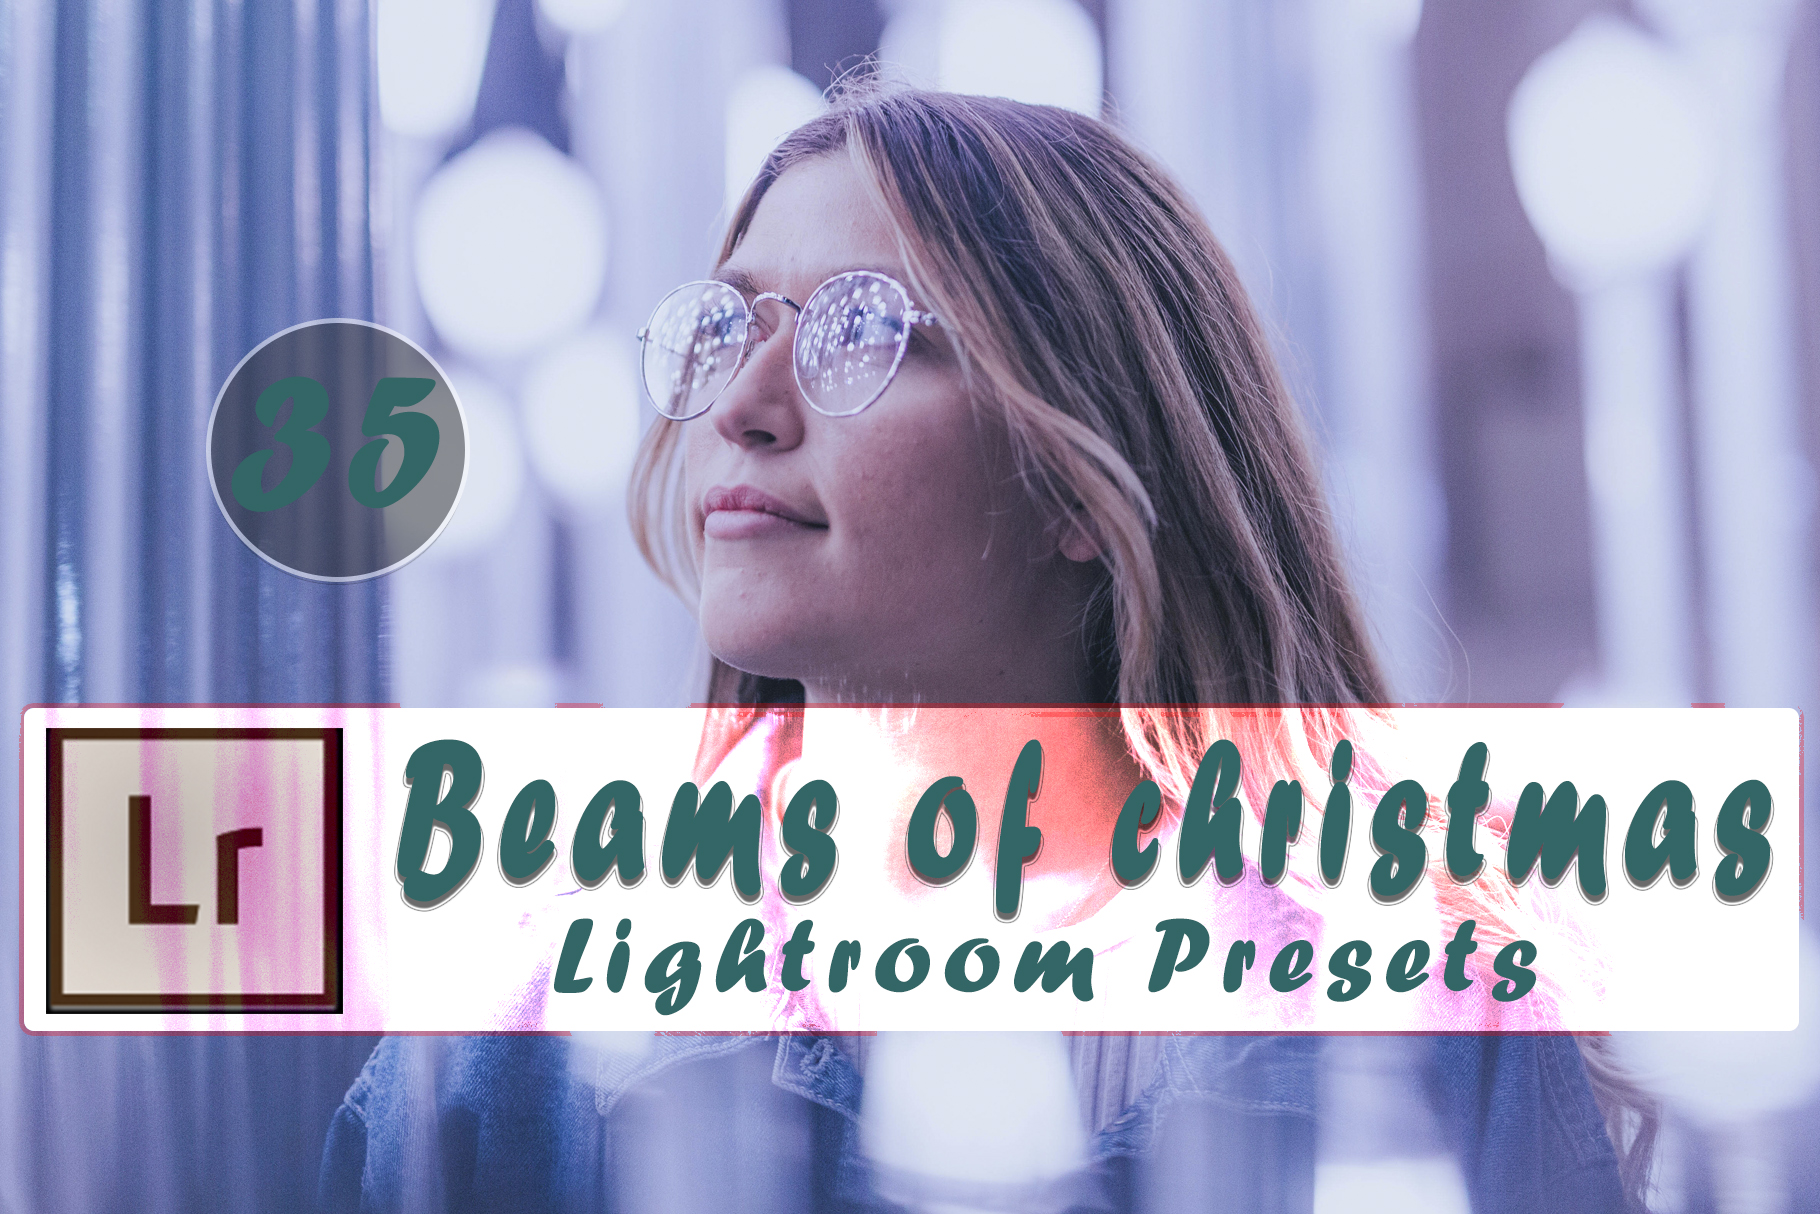 Beams of Christmas Lightroom Presets example image 12